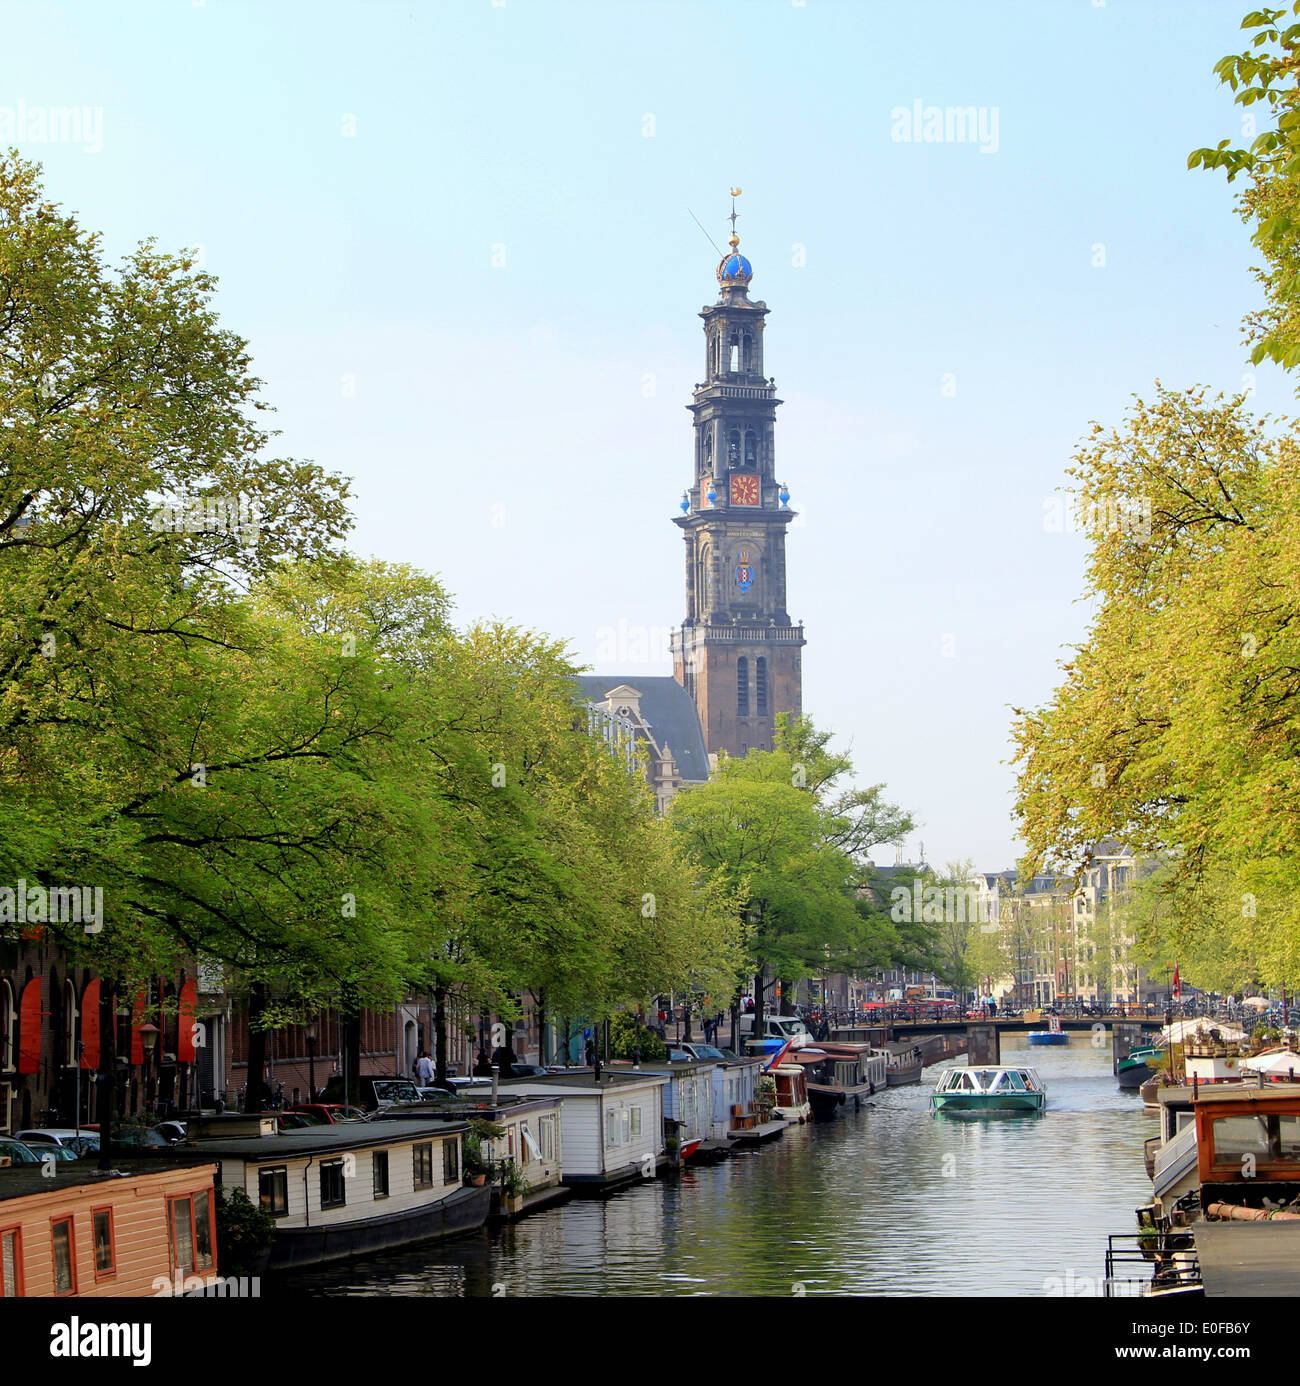 Springtime at Prinsengracht canal with the 17th century Westerkerk in  Amsterdam, the Netherlands in the background - Stock Image